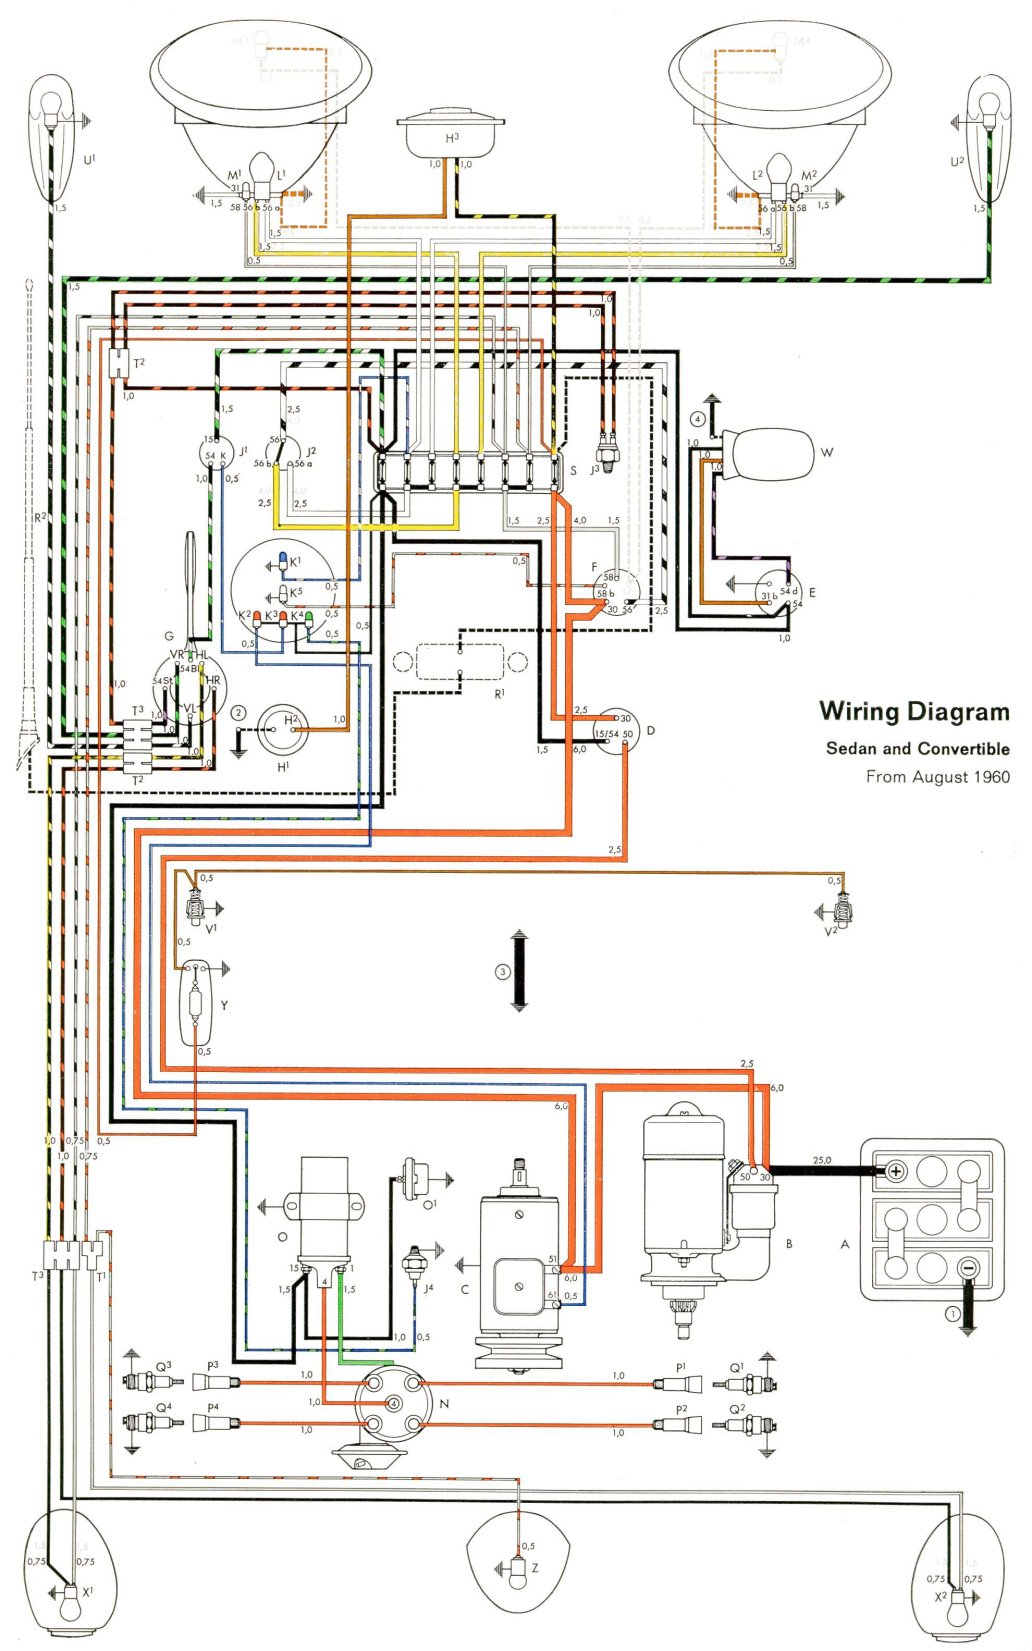 bug_61 1961 beetle wiring diagram thegoldenbug com 1957 vw bug wiring diagram at edmiracle.co